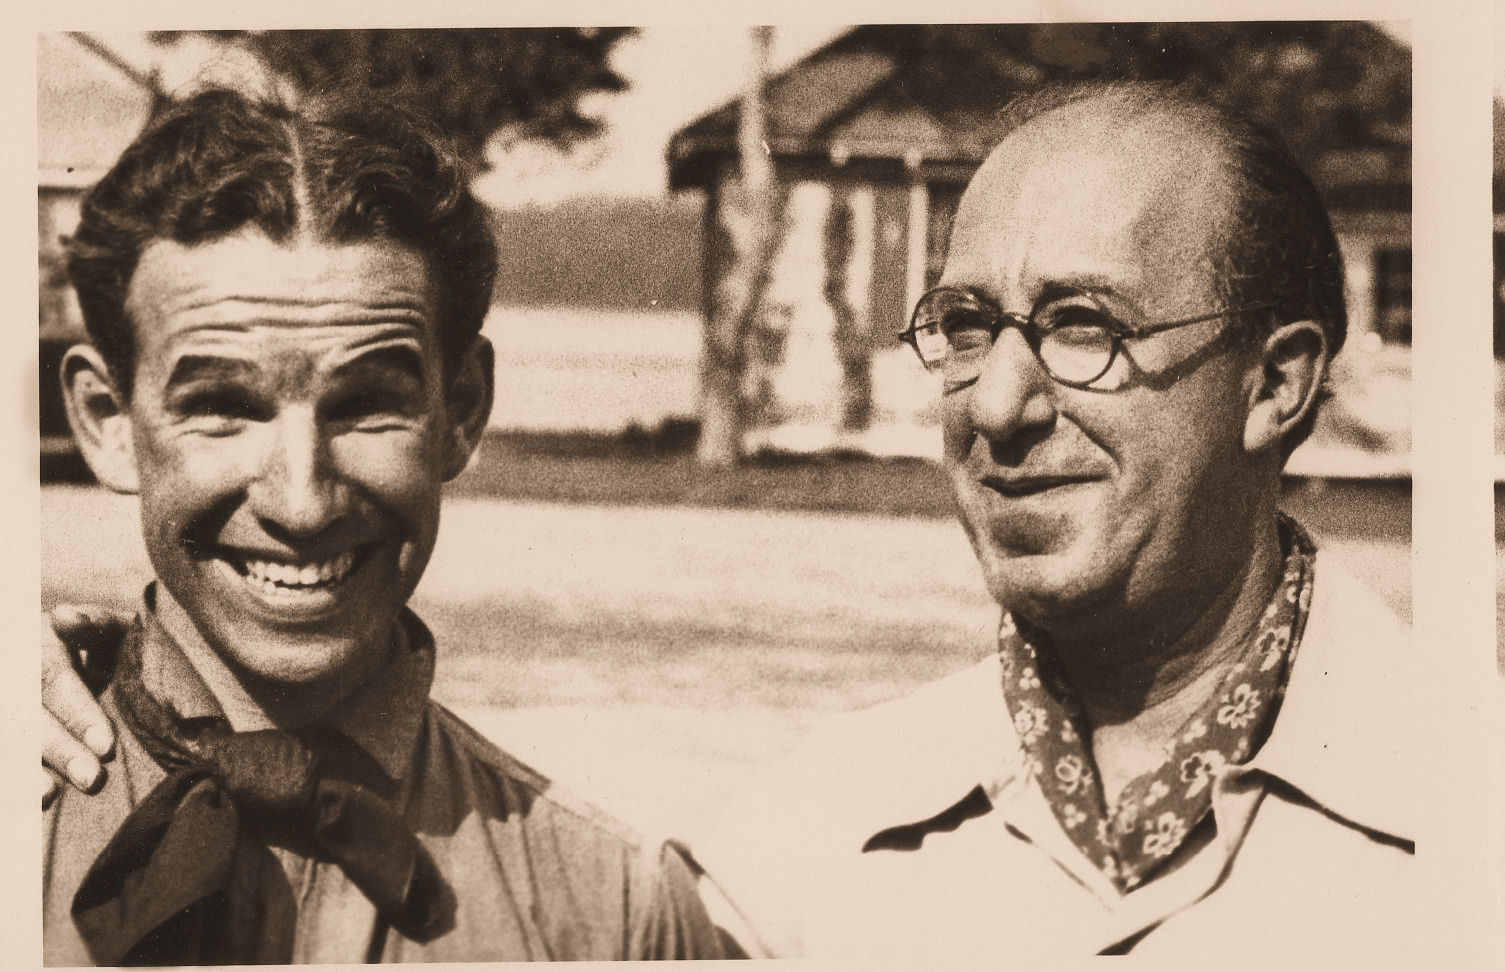 Left: Hume Cronyn Right: Ed Wynn At Lakewood Theater 1951